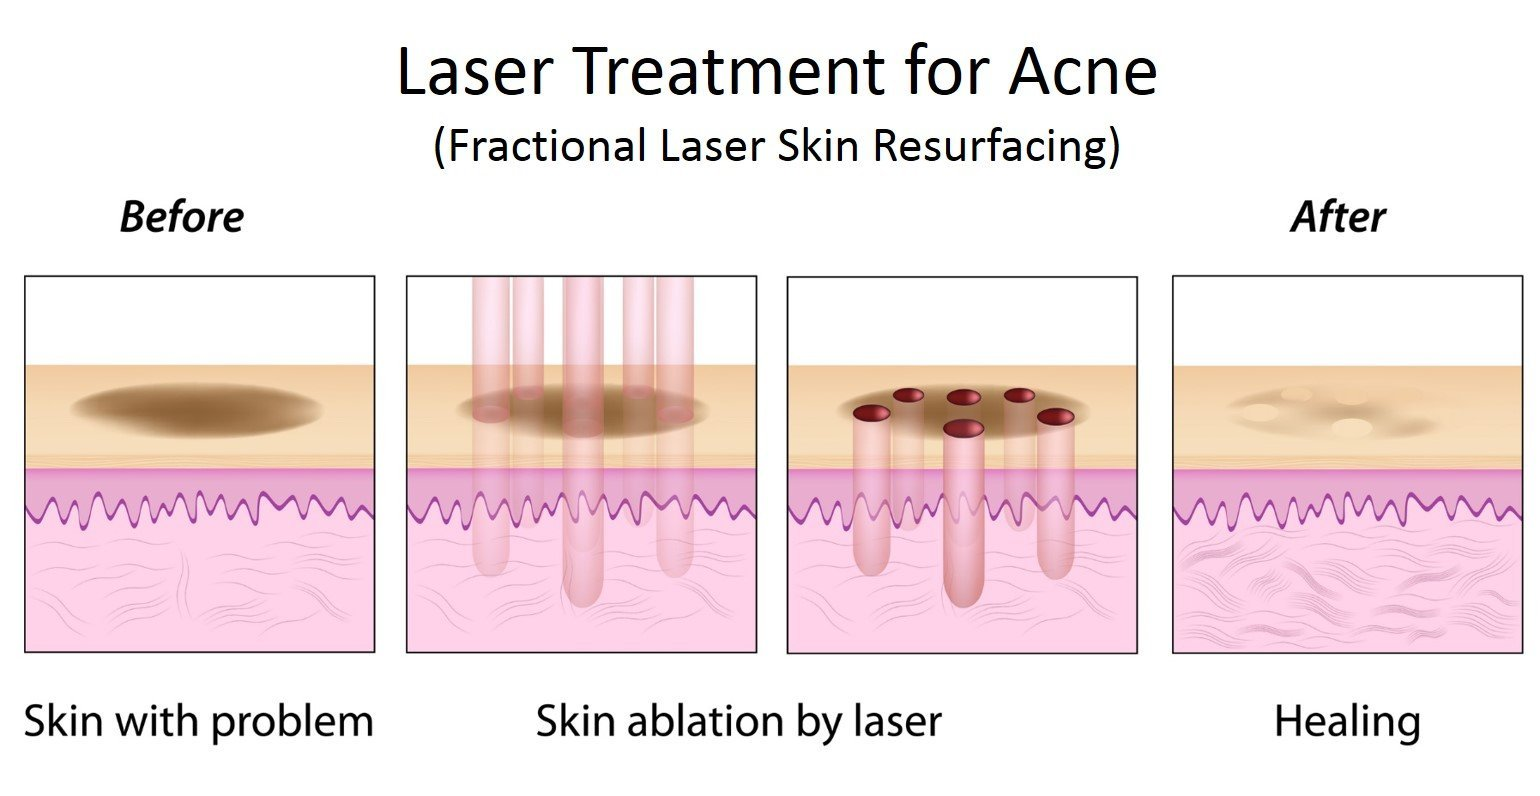 Acne treatment with Laser at Total Body Care